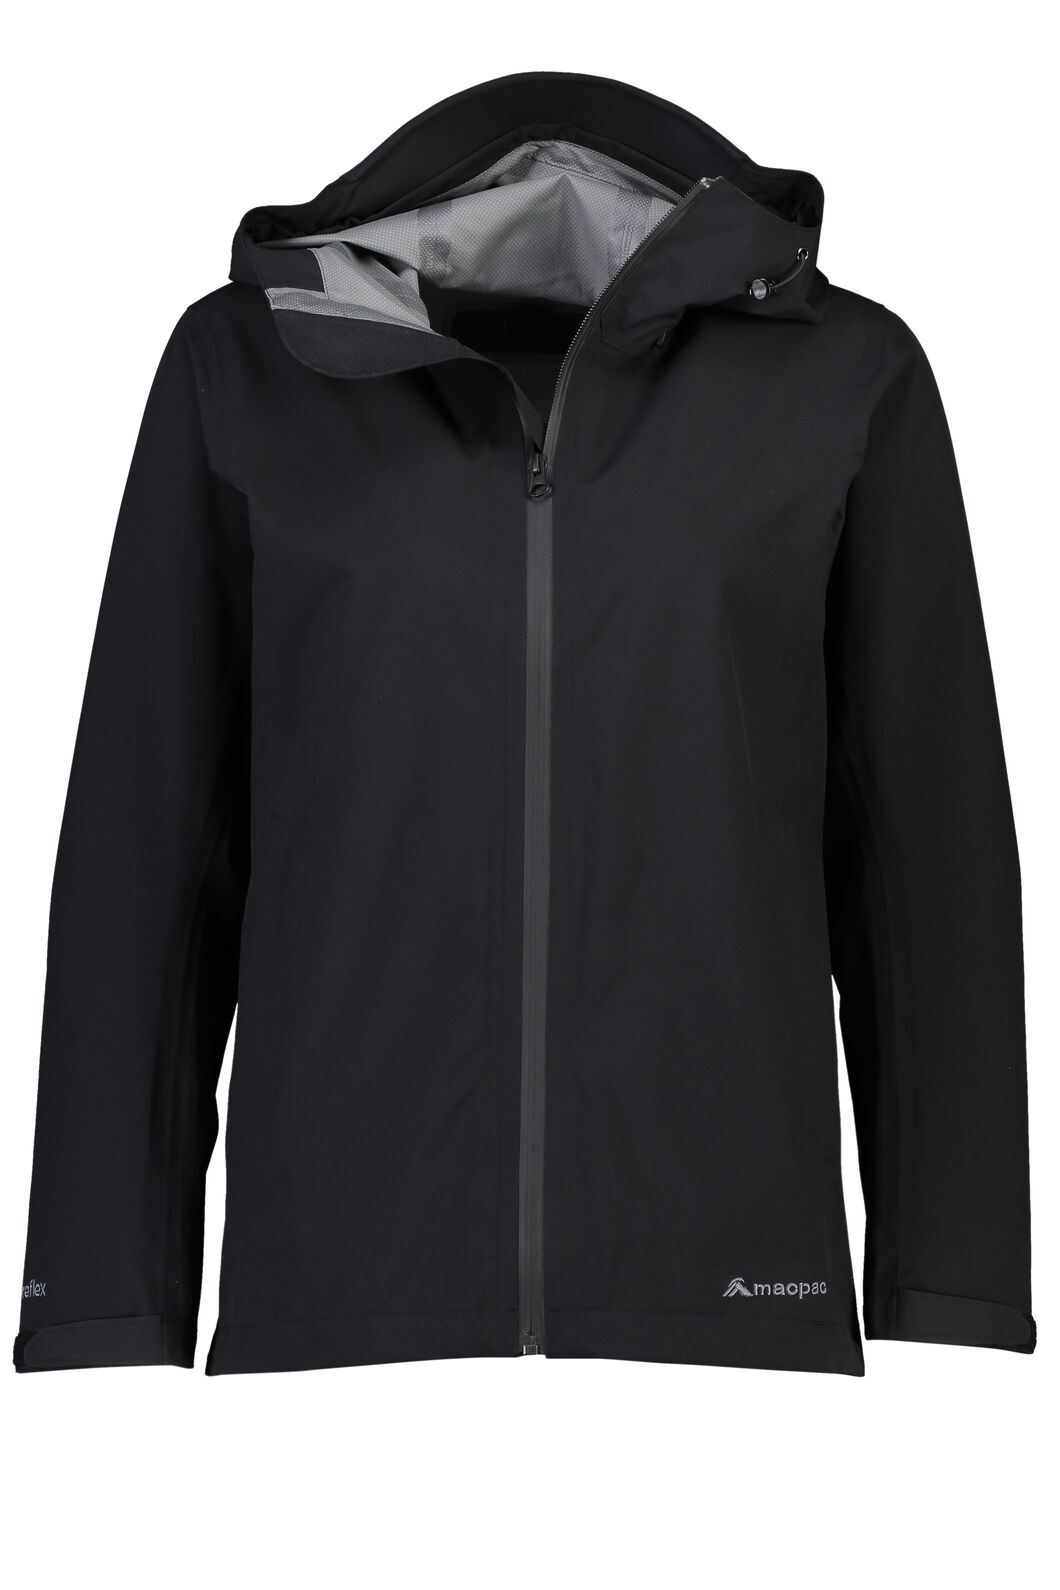 Dispatch Rain Jacket - Women's, Black, hi-res